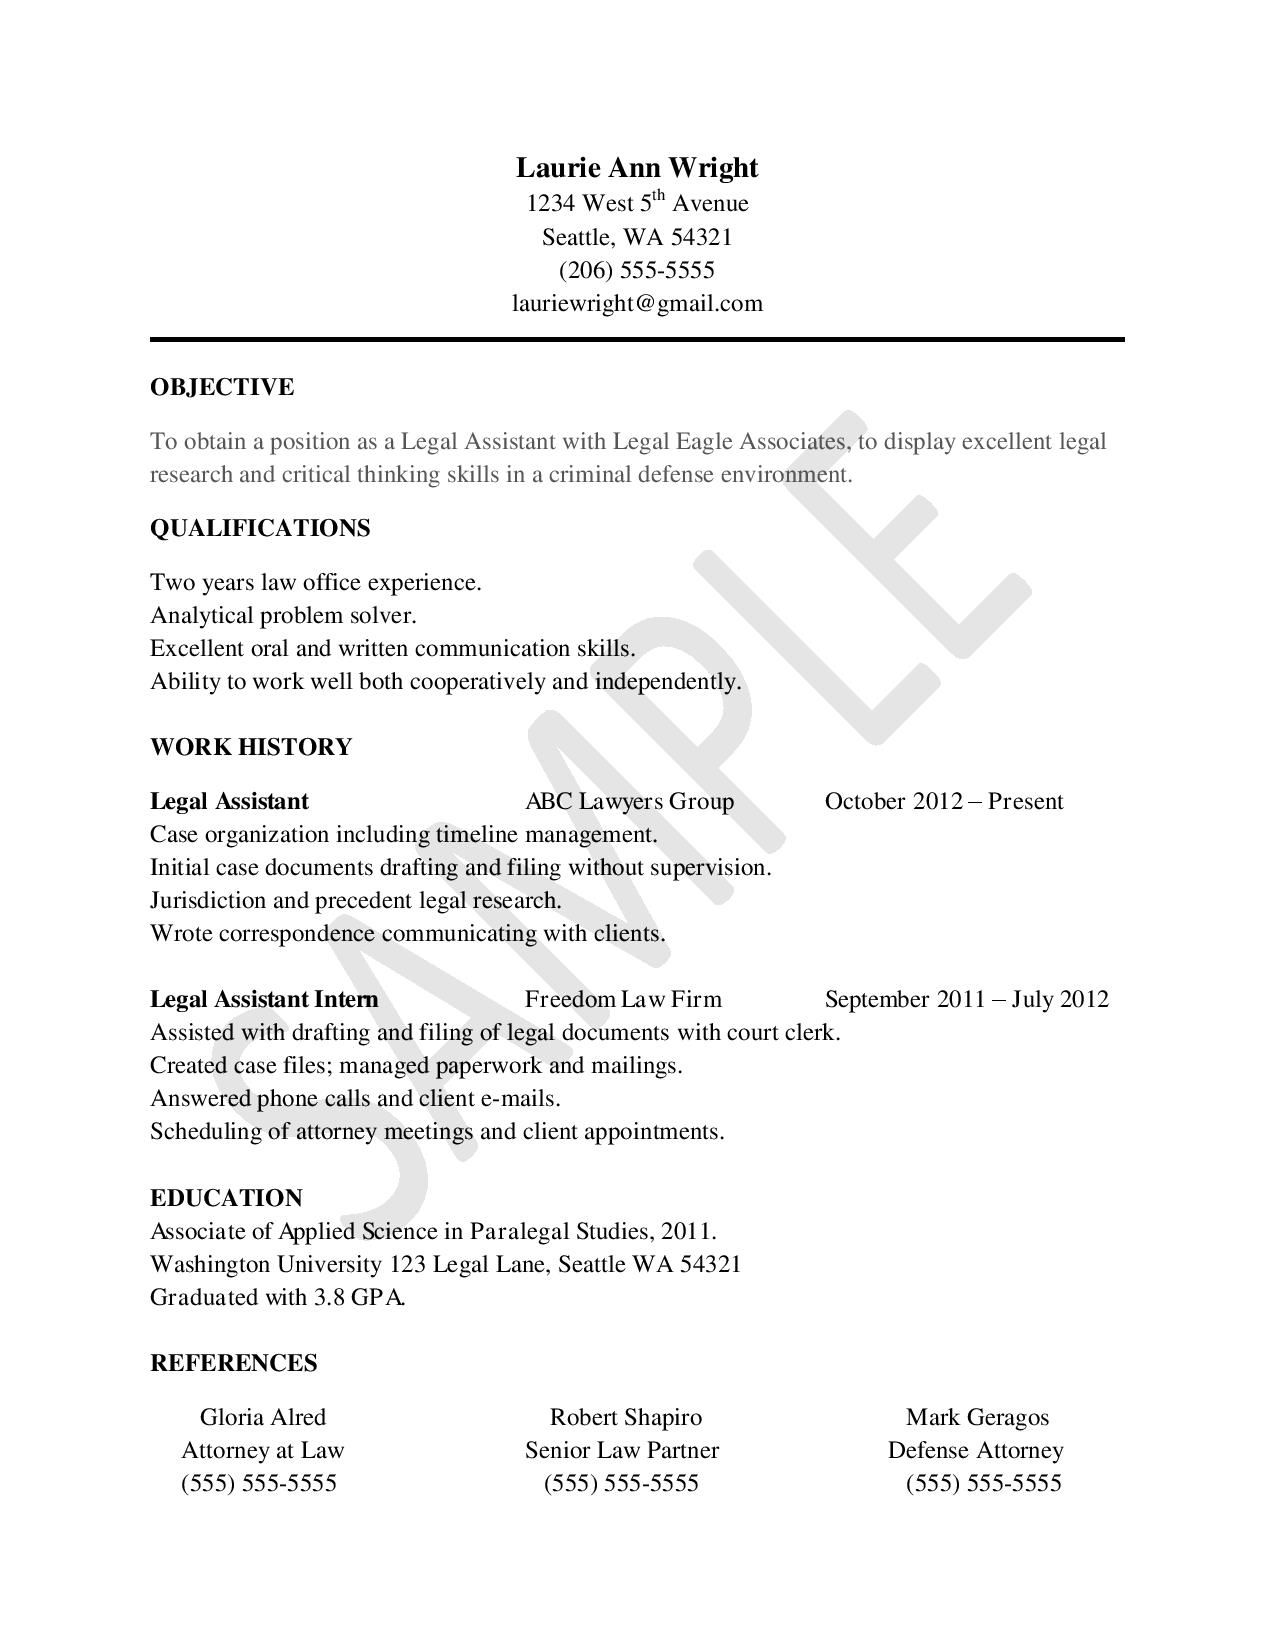 sample resume for legal assistants